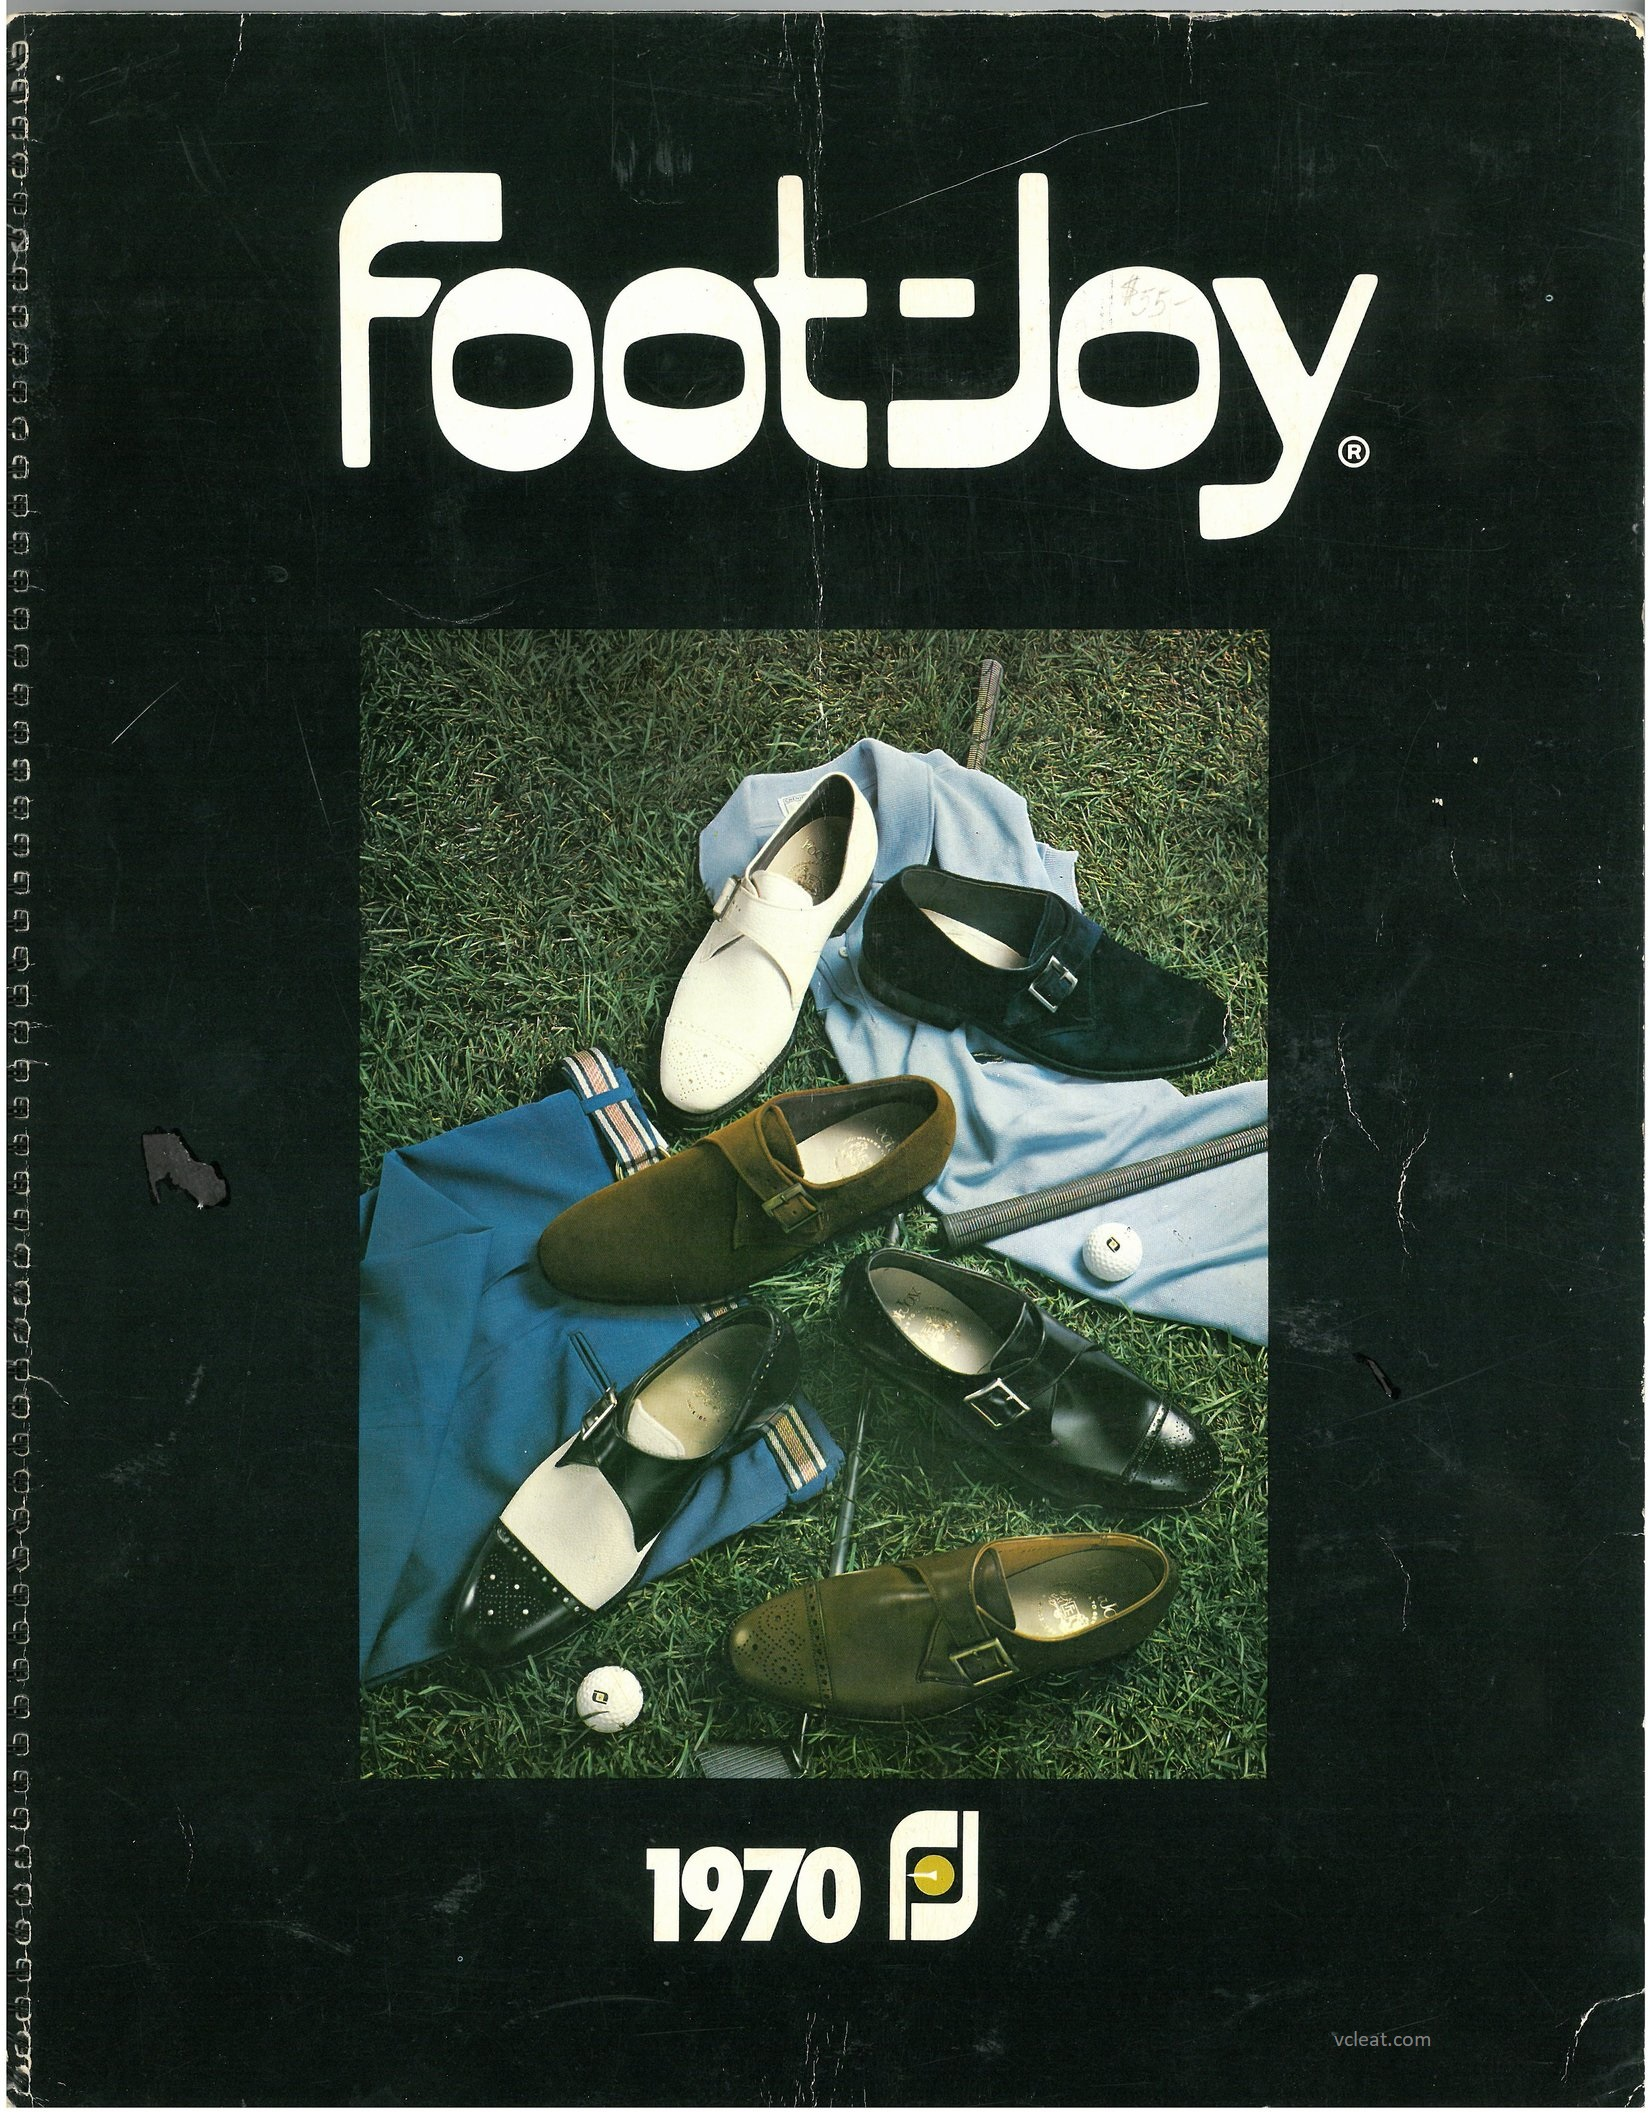 1970 Foot-Joy Catalog